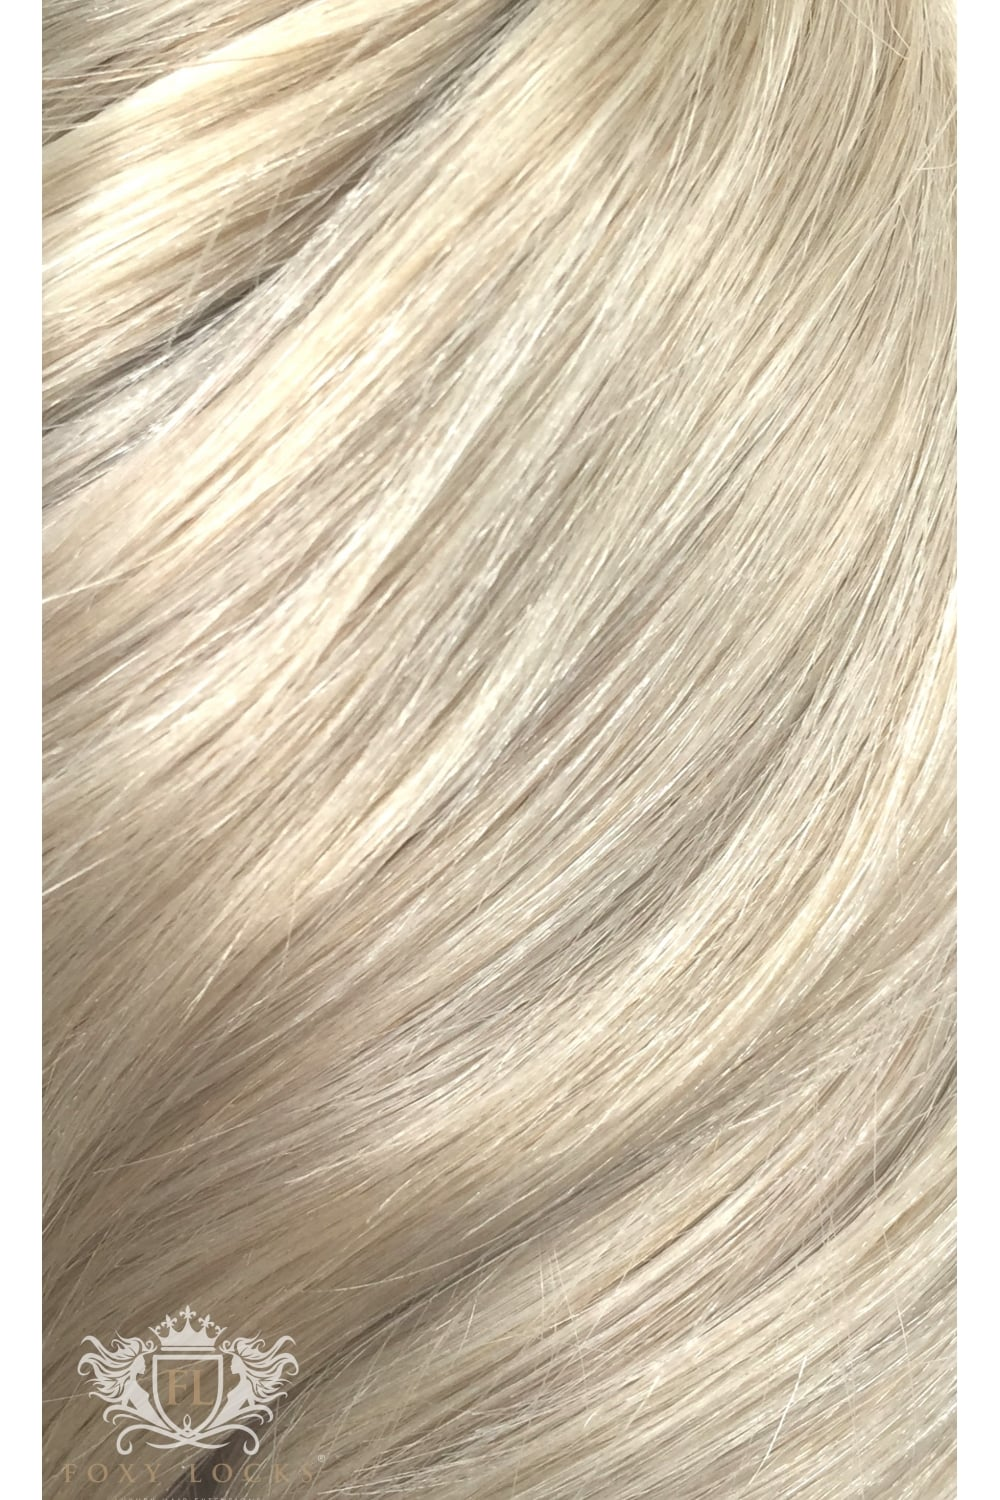 Platinum Blonde Seamless Deluxe 20 Clip In Human Hair Extensions